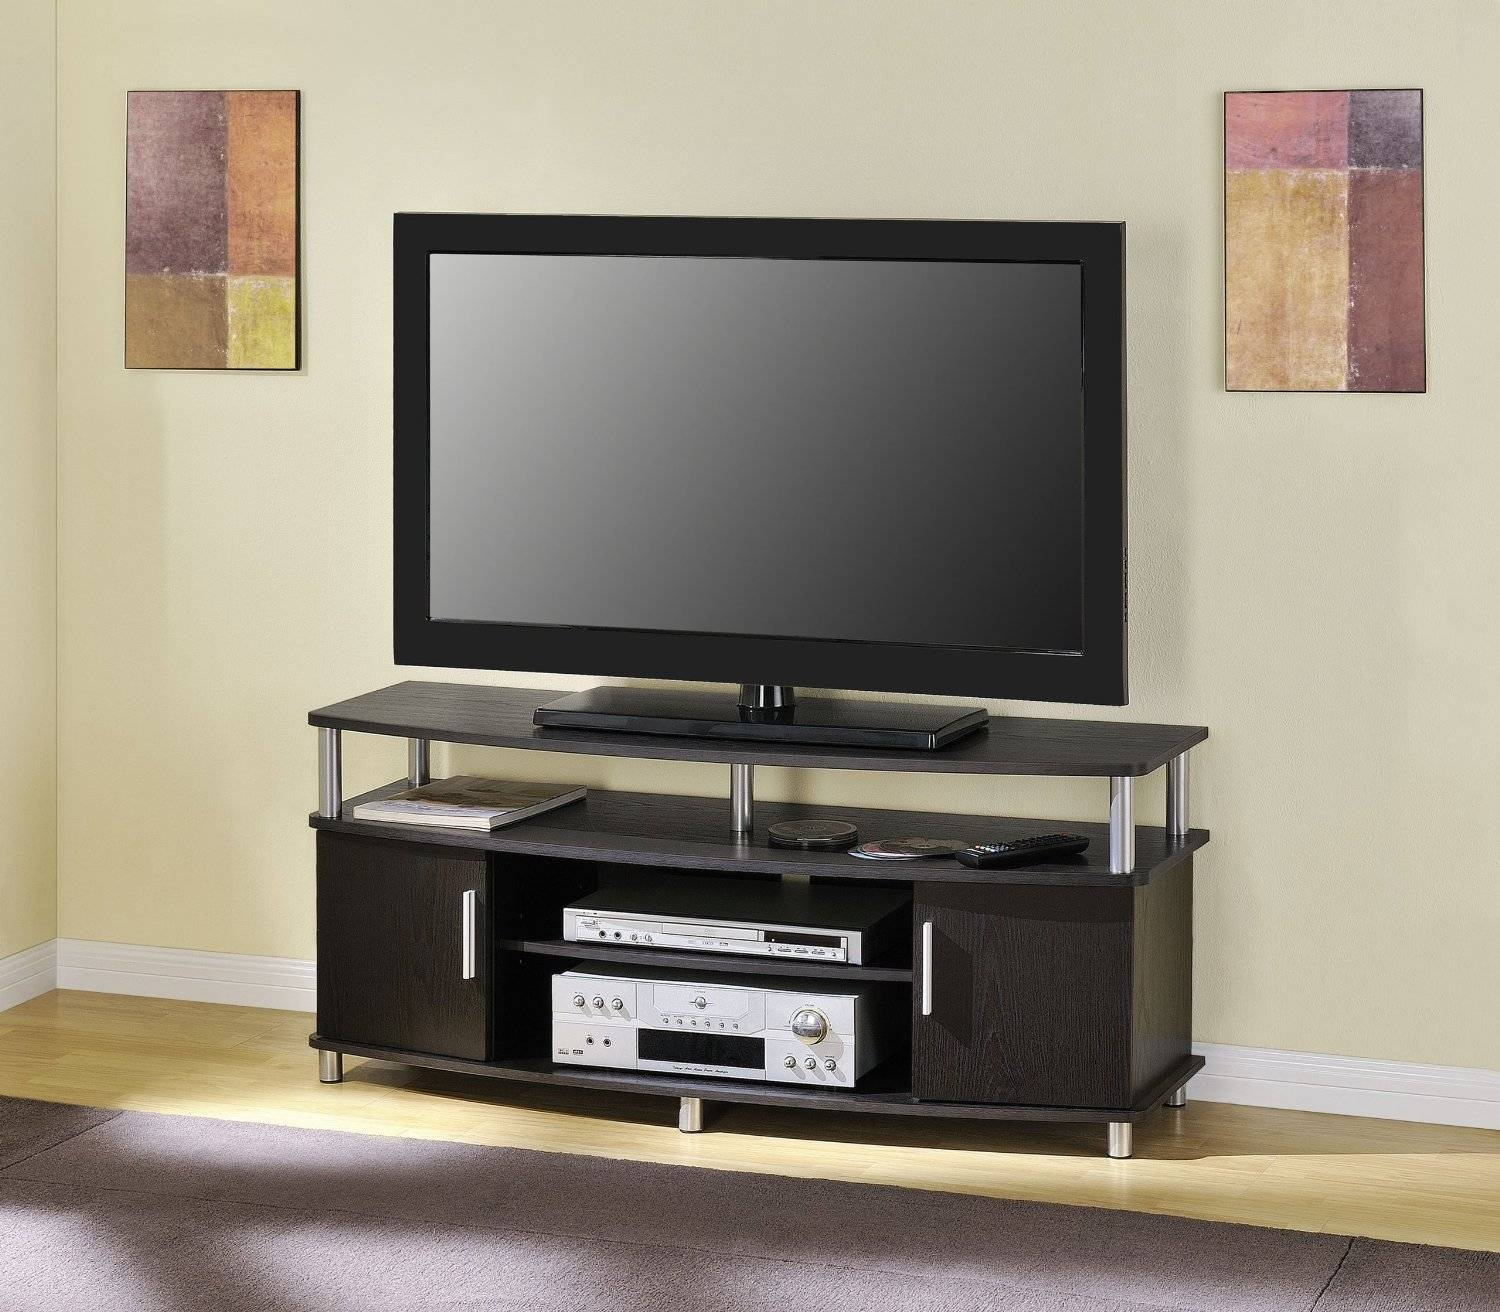 Tv Stands: 7 Best Selling Flat Screen Tv Stands 2017 pertaining to 24 Inch Deep Tv Stands (Image 13 of 15)